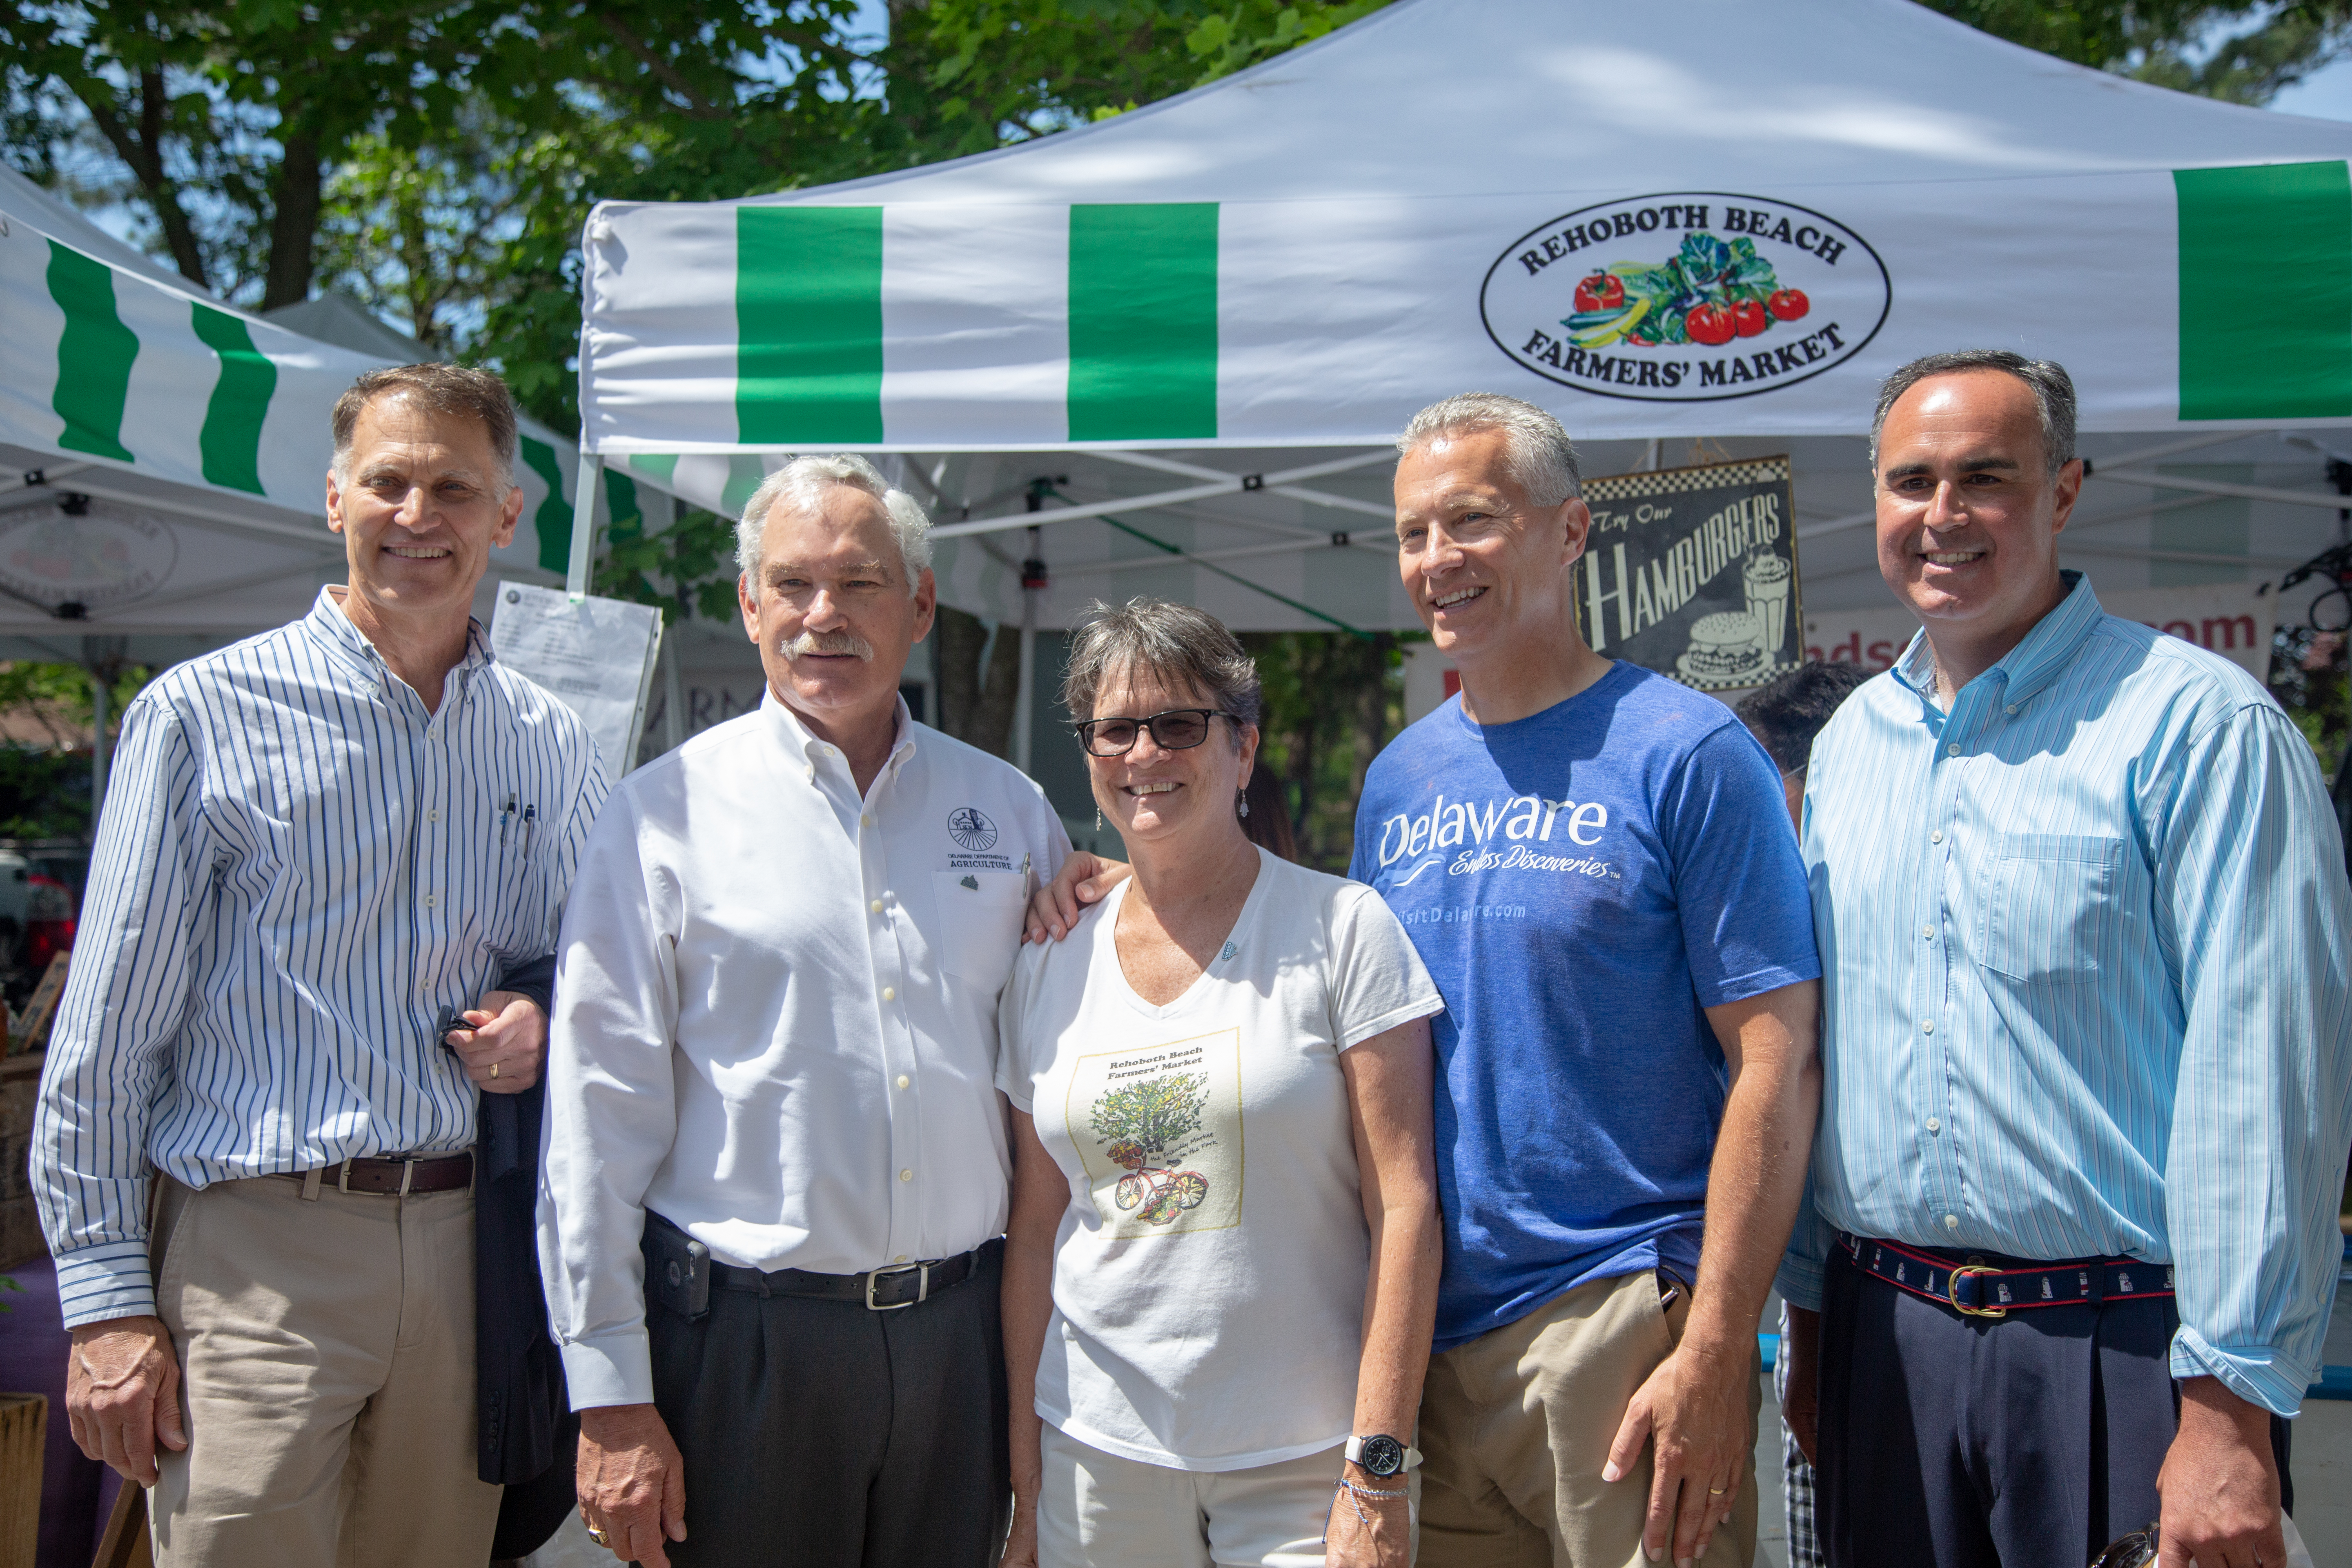 Secretary of Agriculture Michael T. Scuse and Rehoboth Farmers' Market Manager Pat Coluzzi are joined by state legislators to kick off Delaware Grown Week.